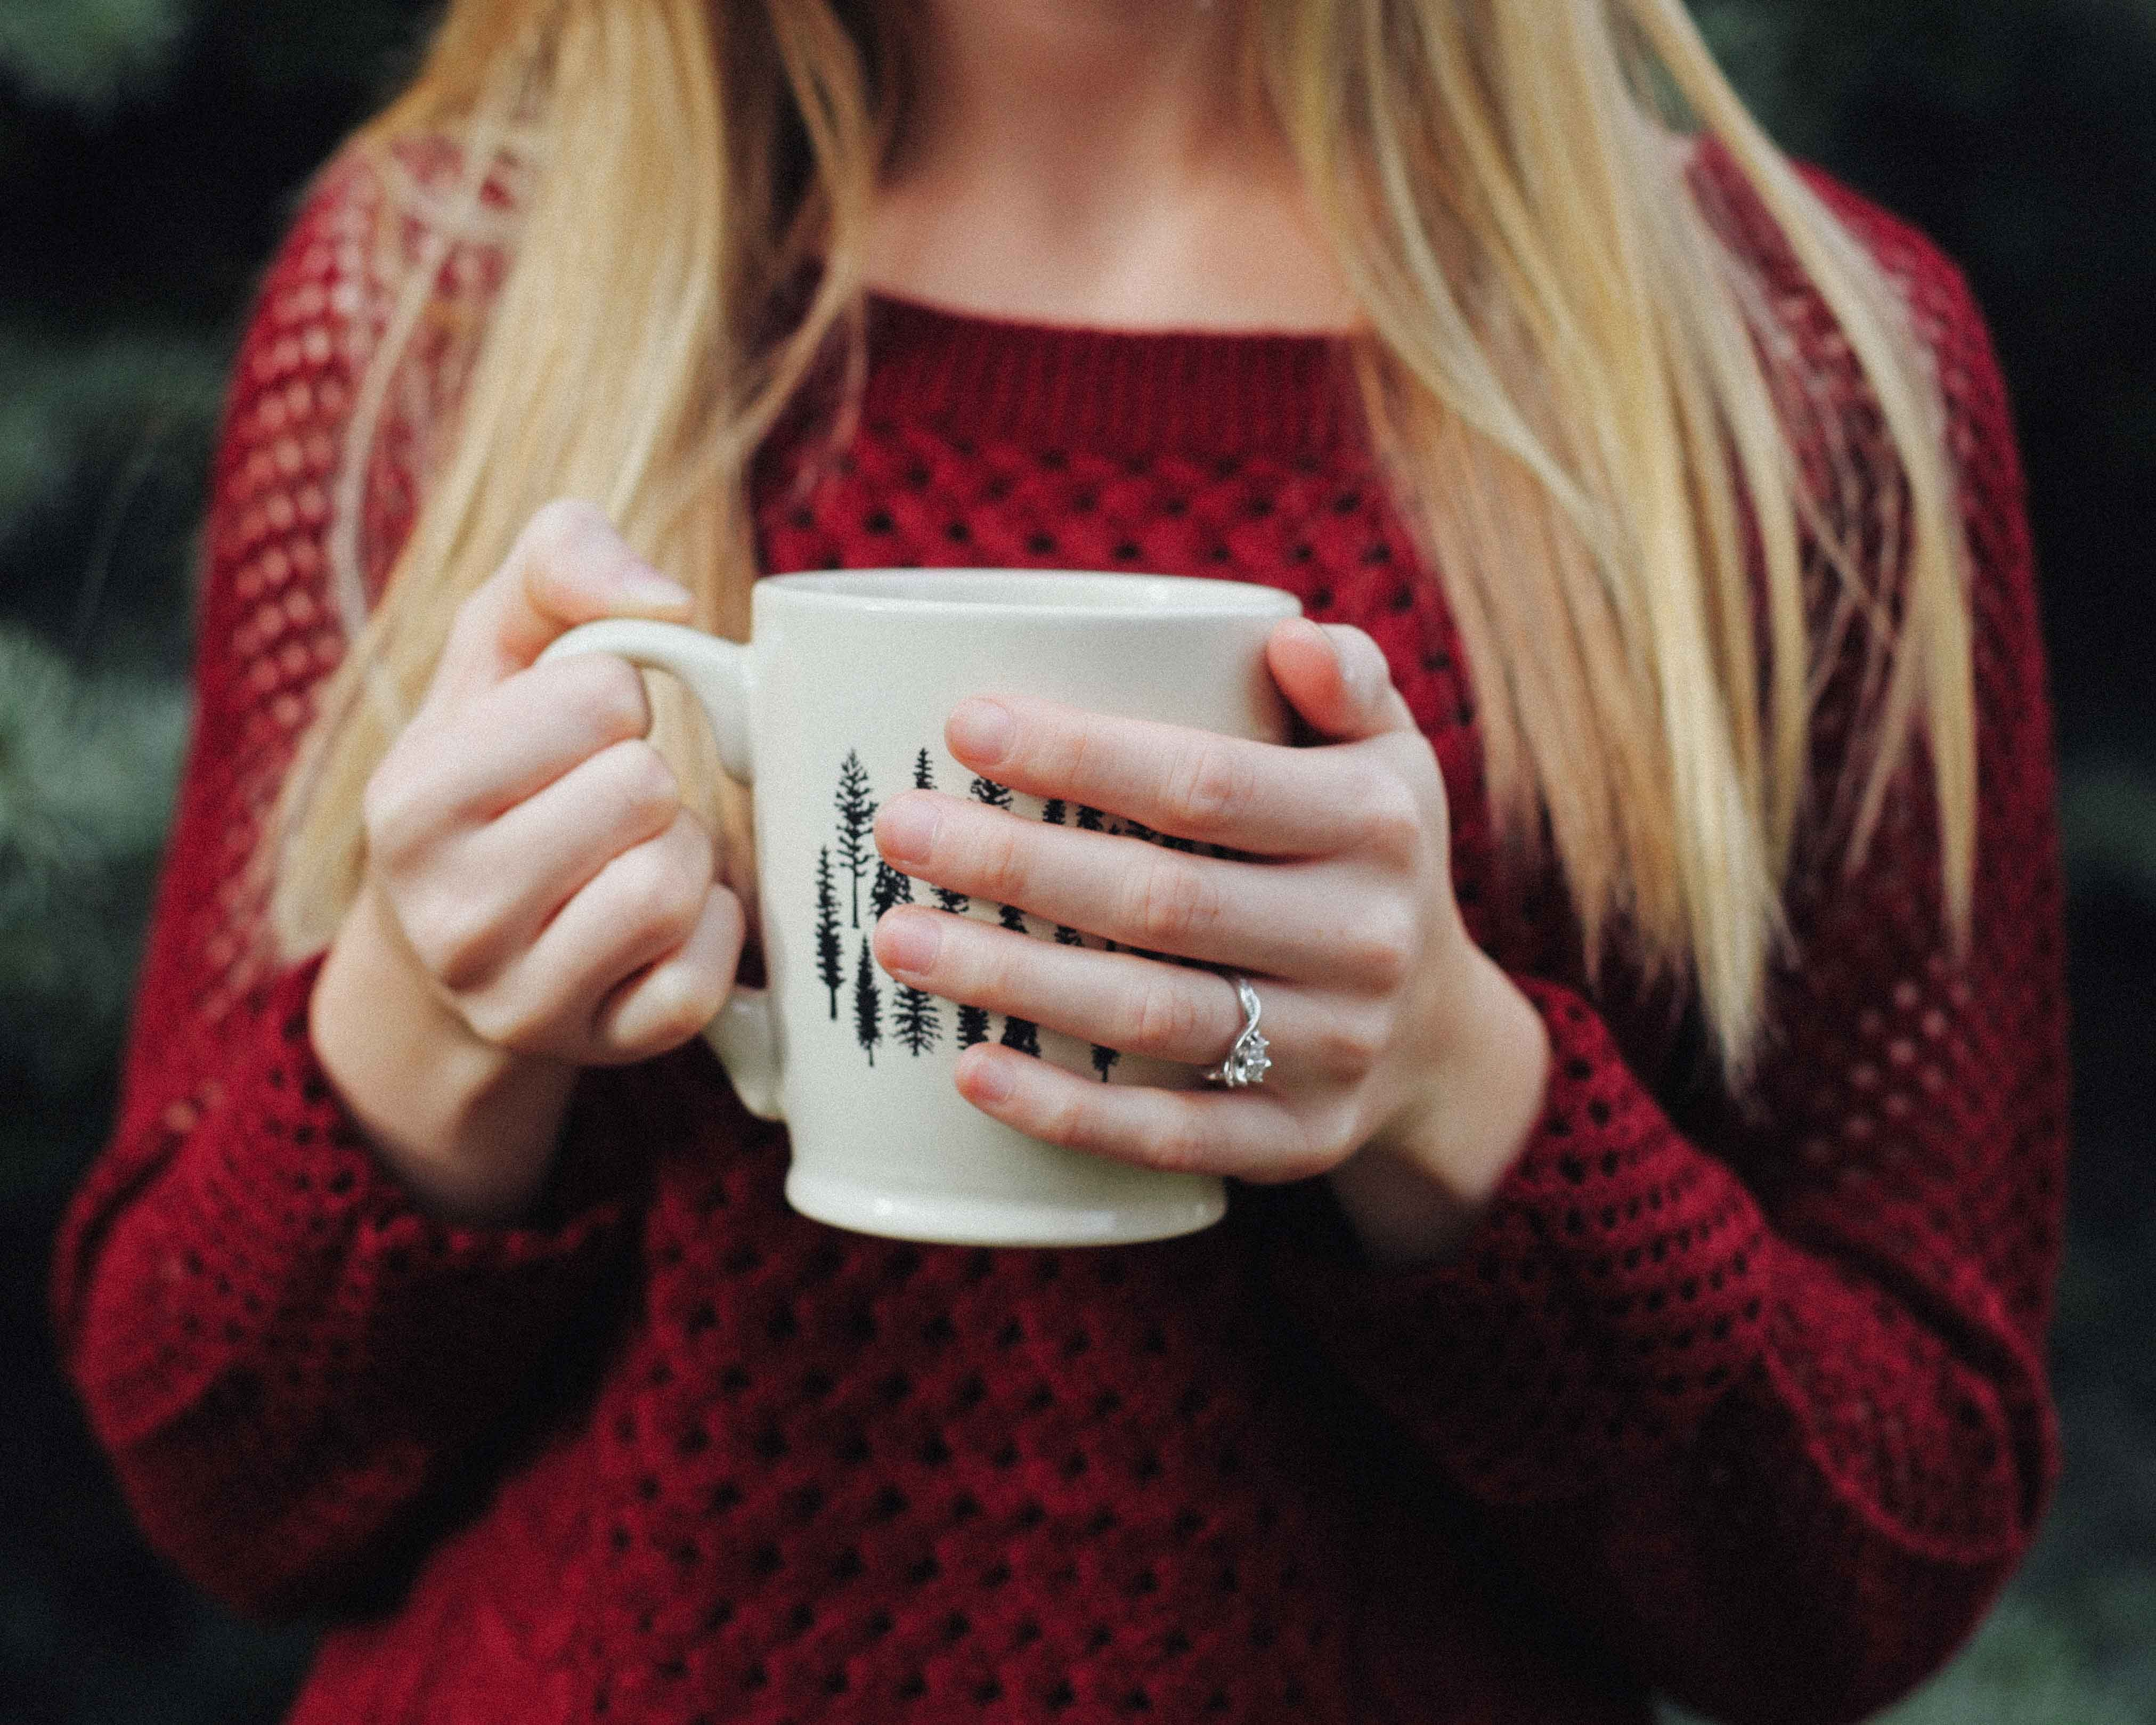 woman wearing red sweater holding white and black ceramic mug